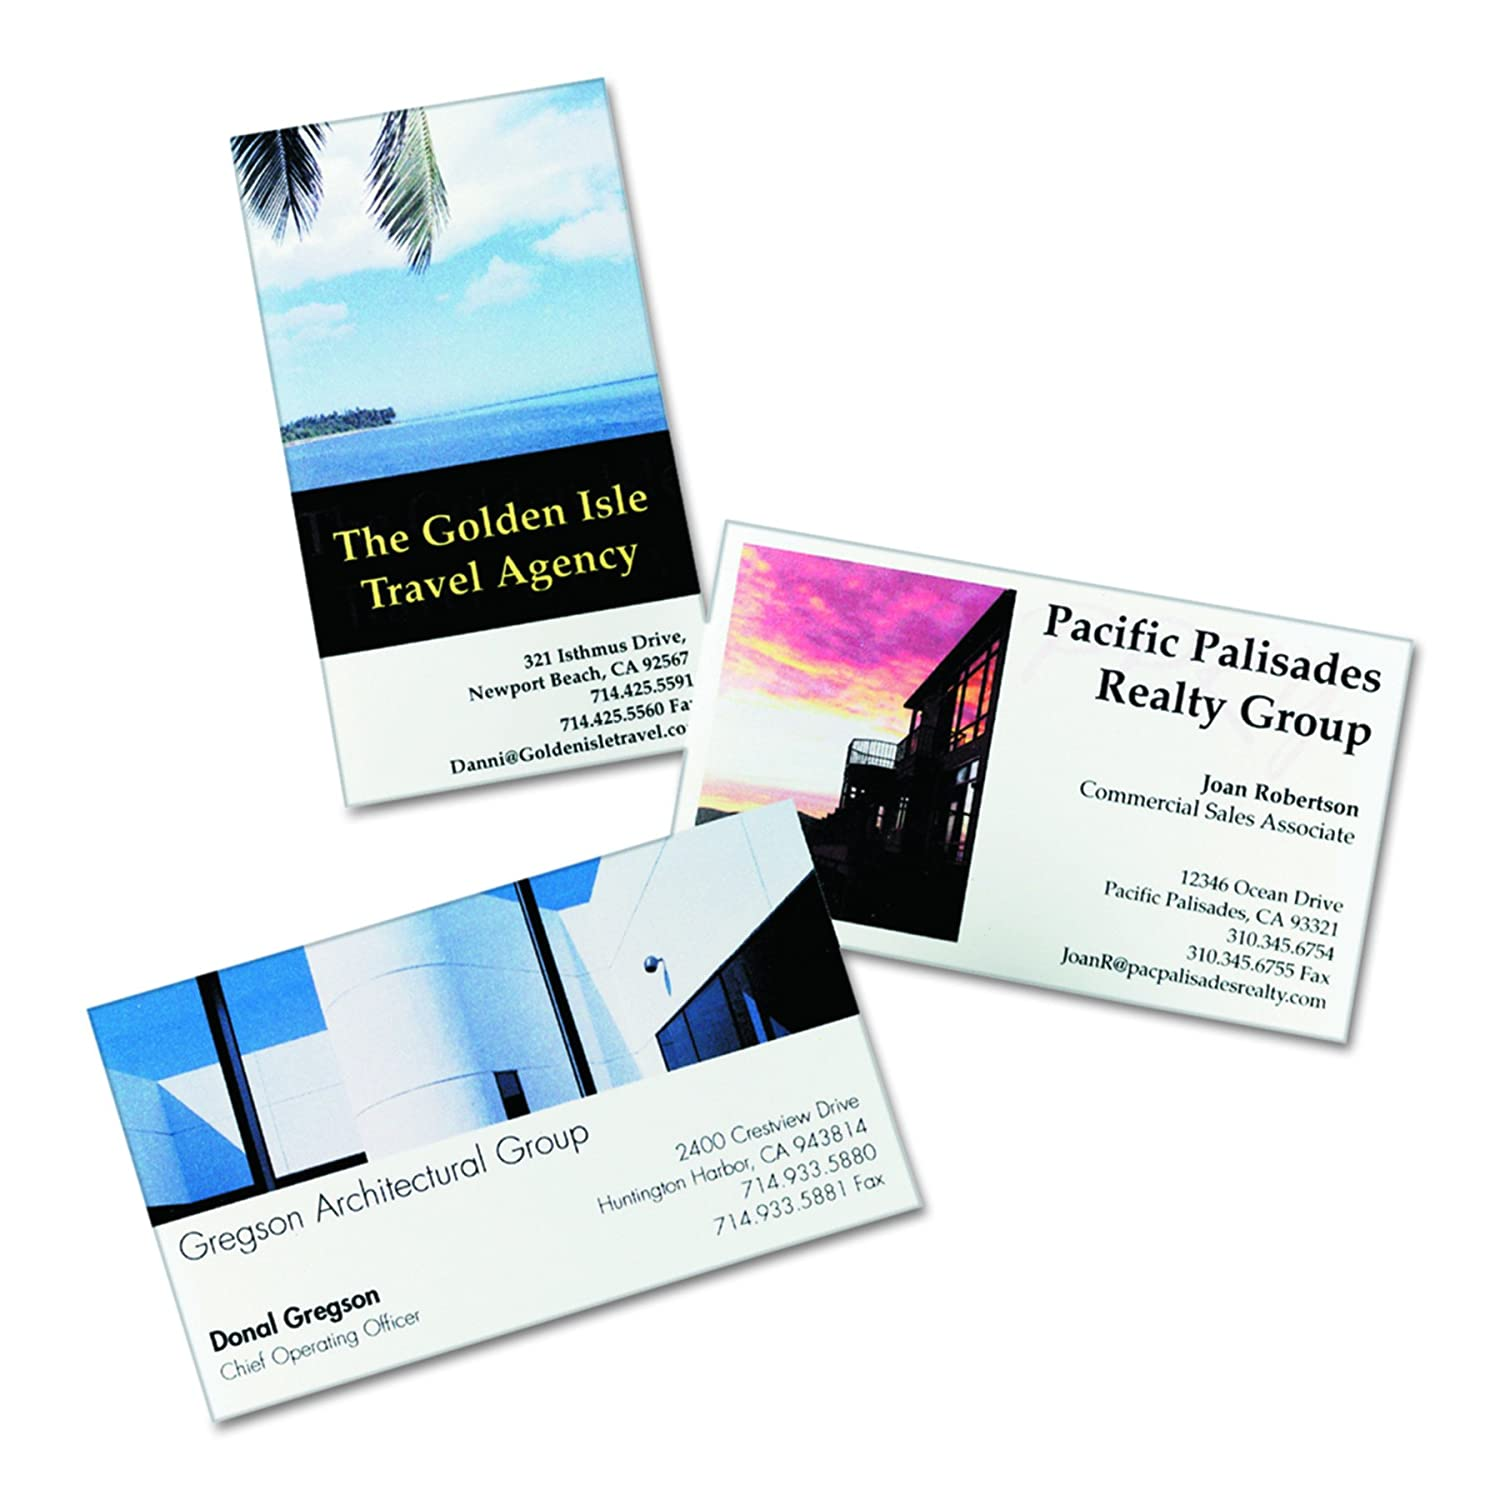 Amazon avery glossy photo quality business cards for inkjet amazon avery glossy photo quality business cards for inkjet printers 8373 inkjet printer paper office products magicingreecefo Image collections